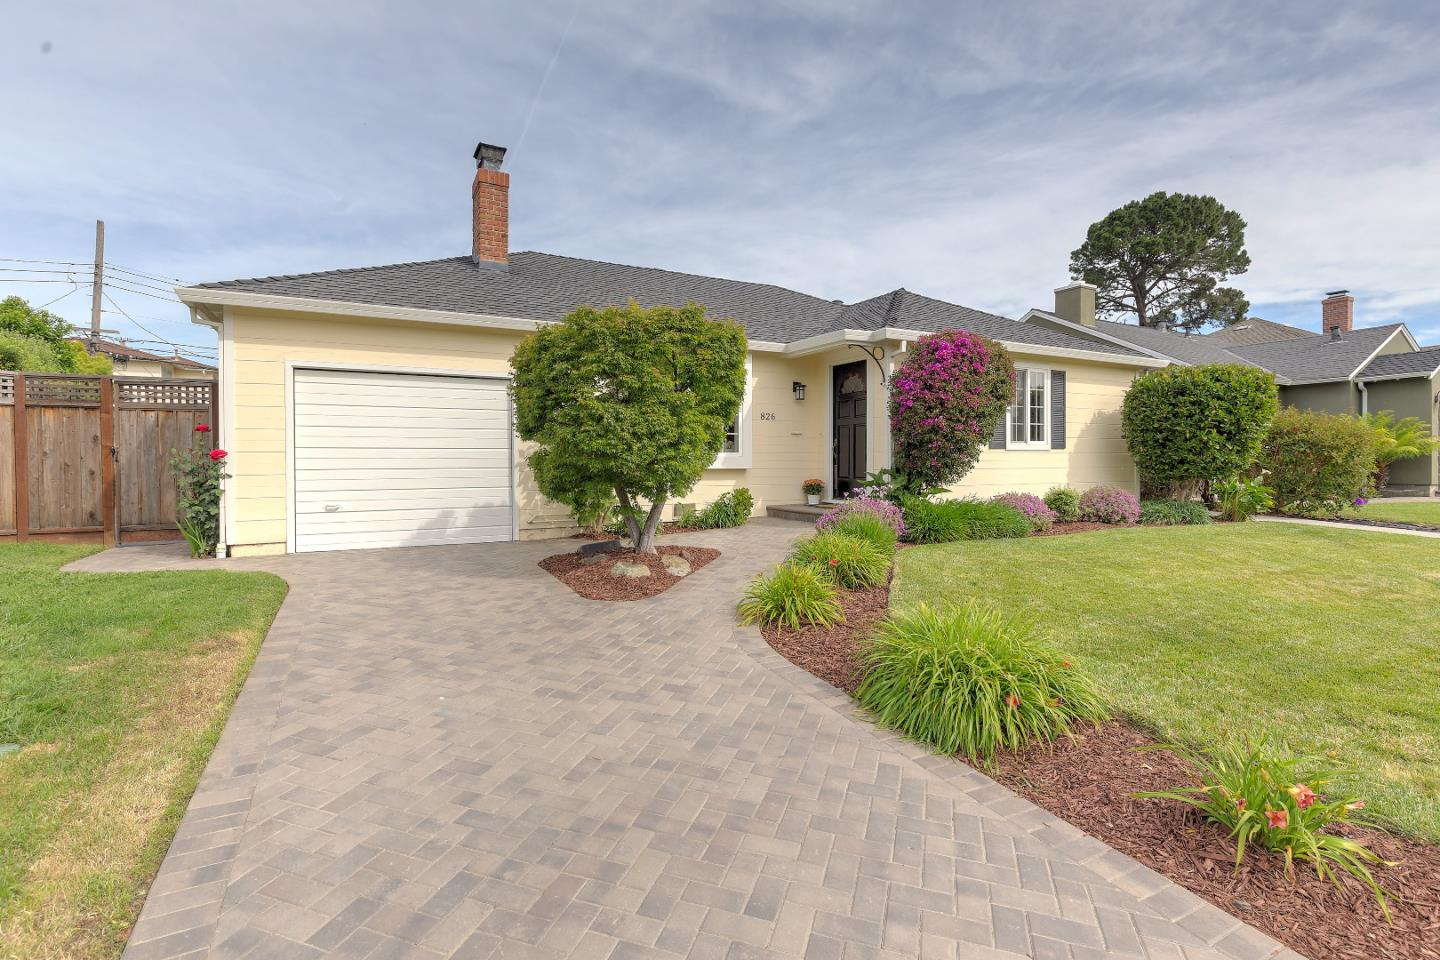 Additional photo for property listing at 826 W Grant Pl  SAN MATEO, CALIFORNIA 94402